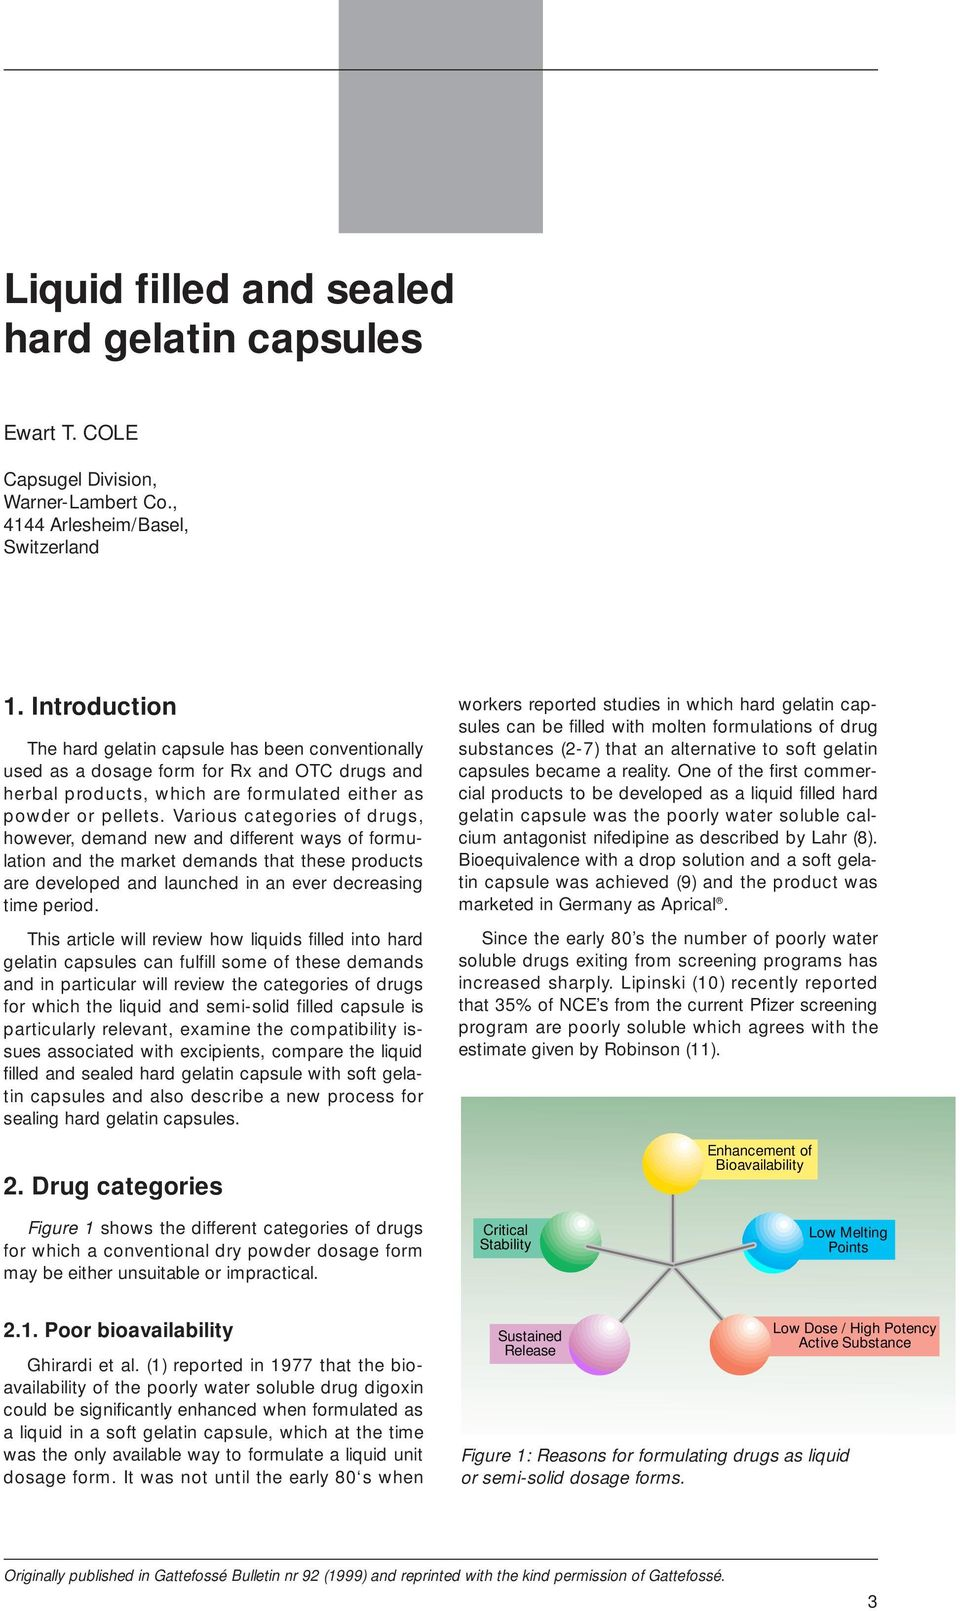 Liquid filled and sealed hard gelatin capsules - PDF